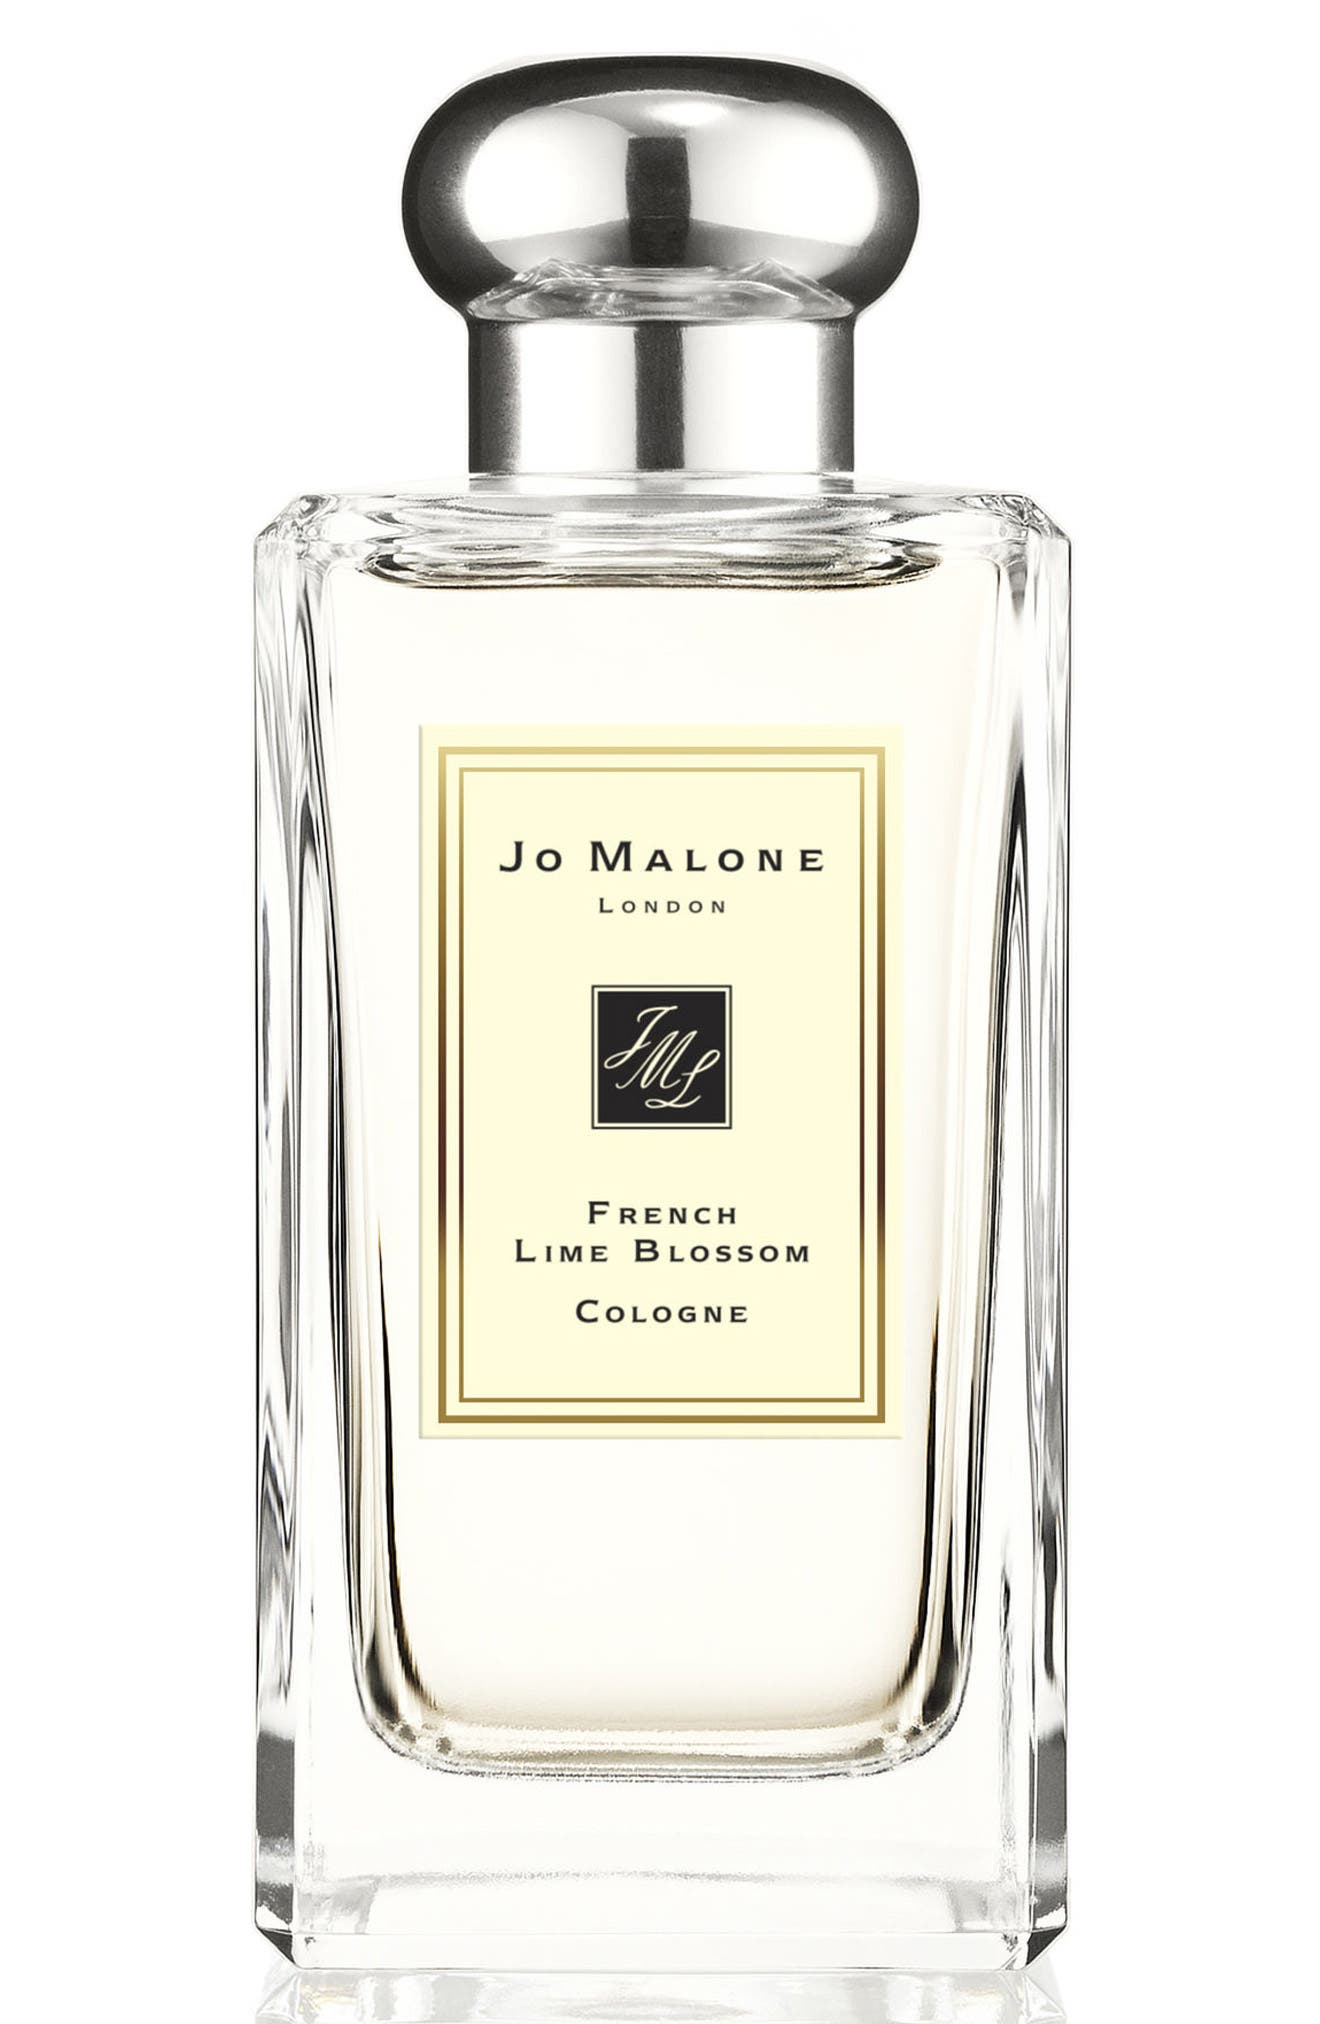 Jo Malone London™ French Lime Blossom Cologne (3.4 oz.)